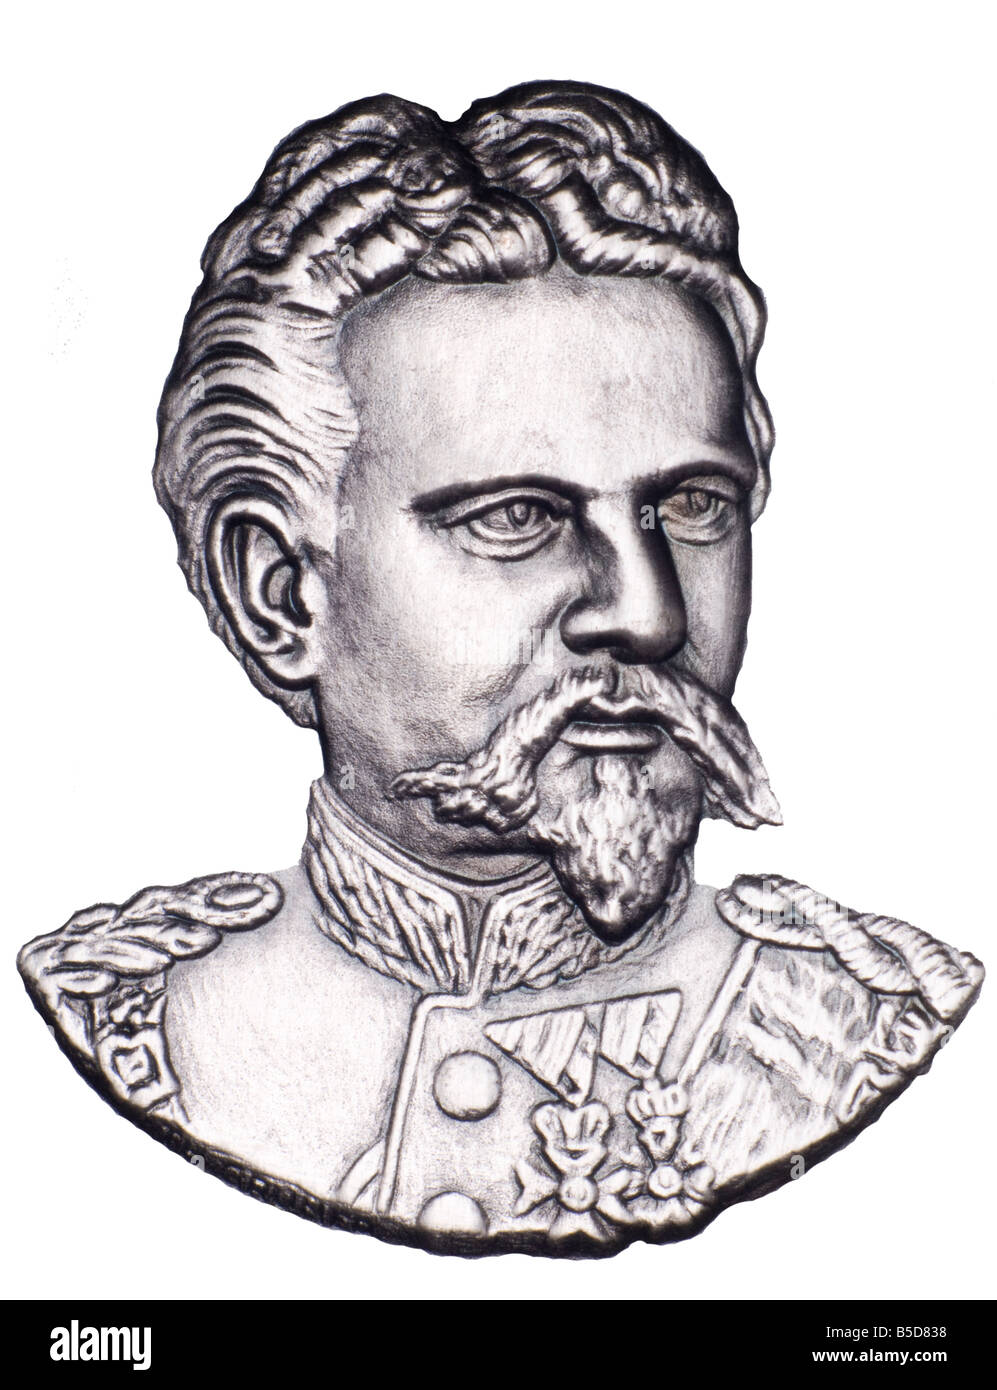 Portrait of King Ludwig II of Bavaria from commemorative Medallion - Stock Image